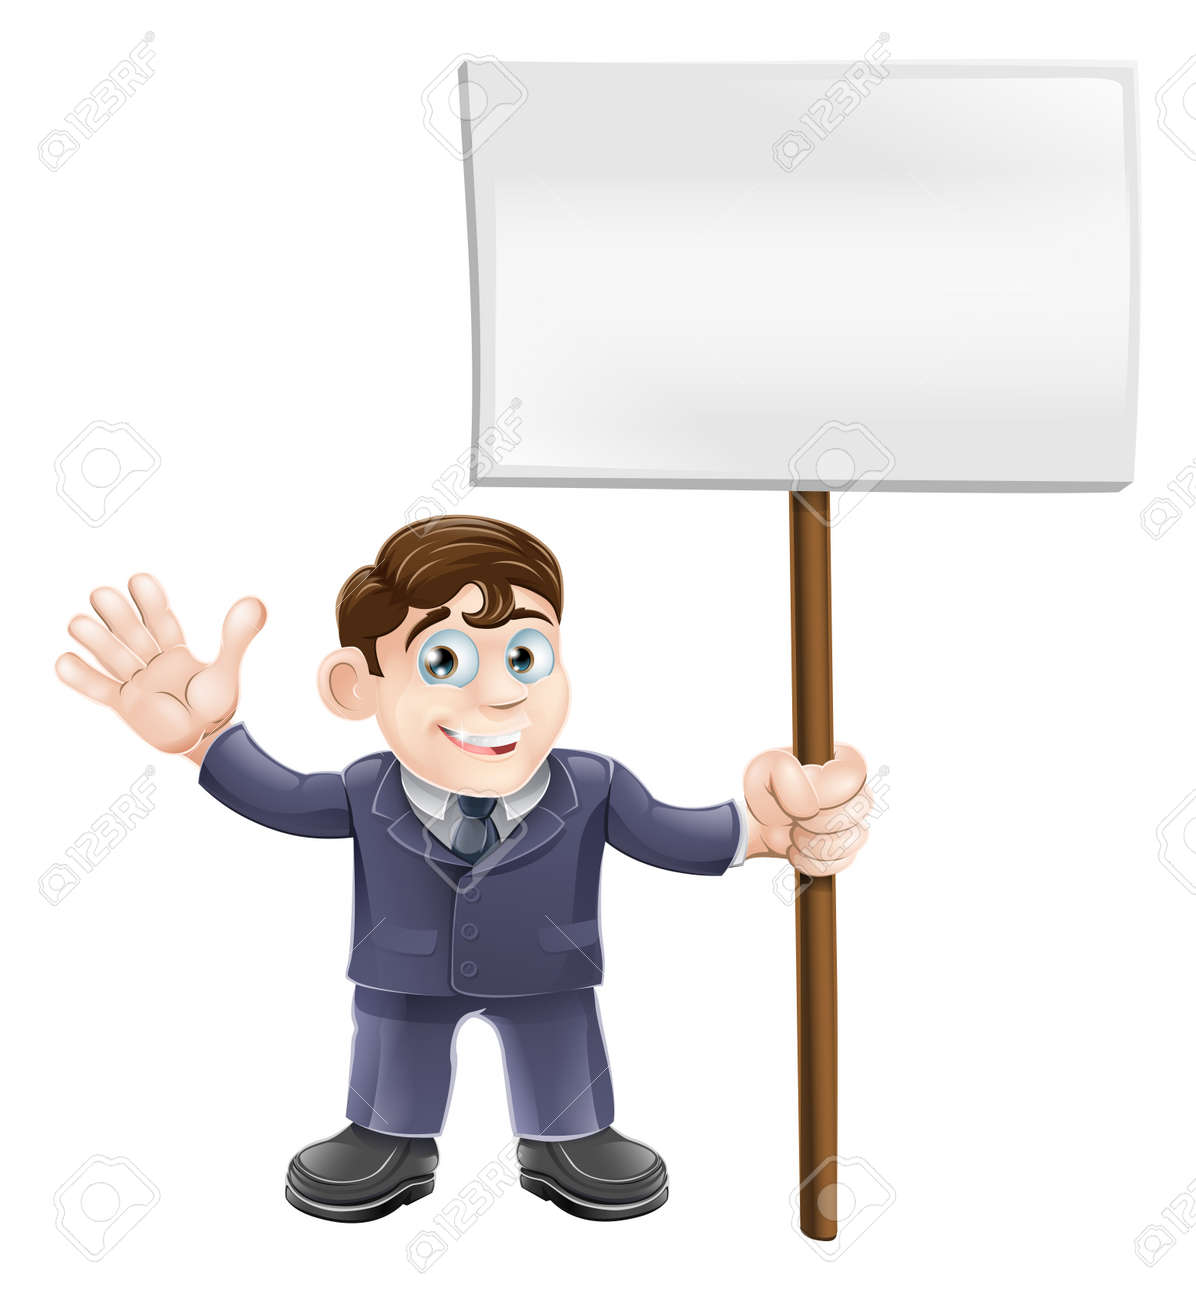 Illustration of a cute businessman holding a sign and waving Stock Vector - 14656073